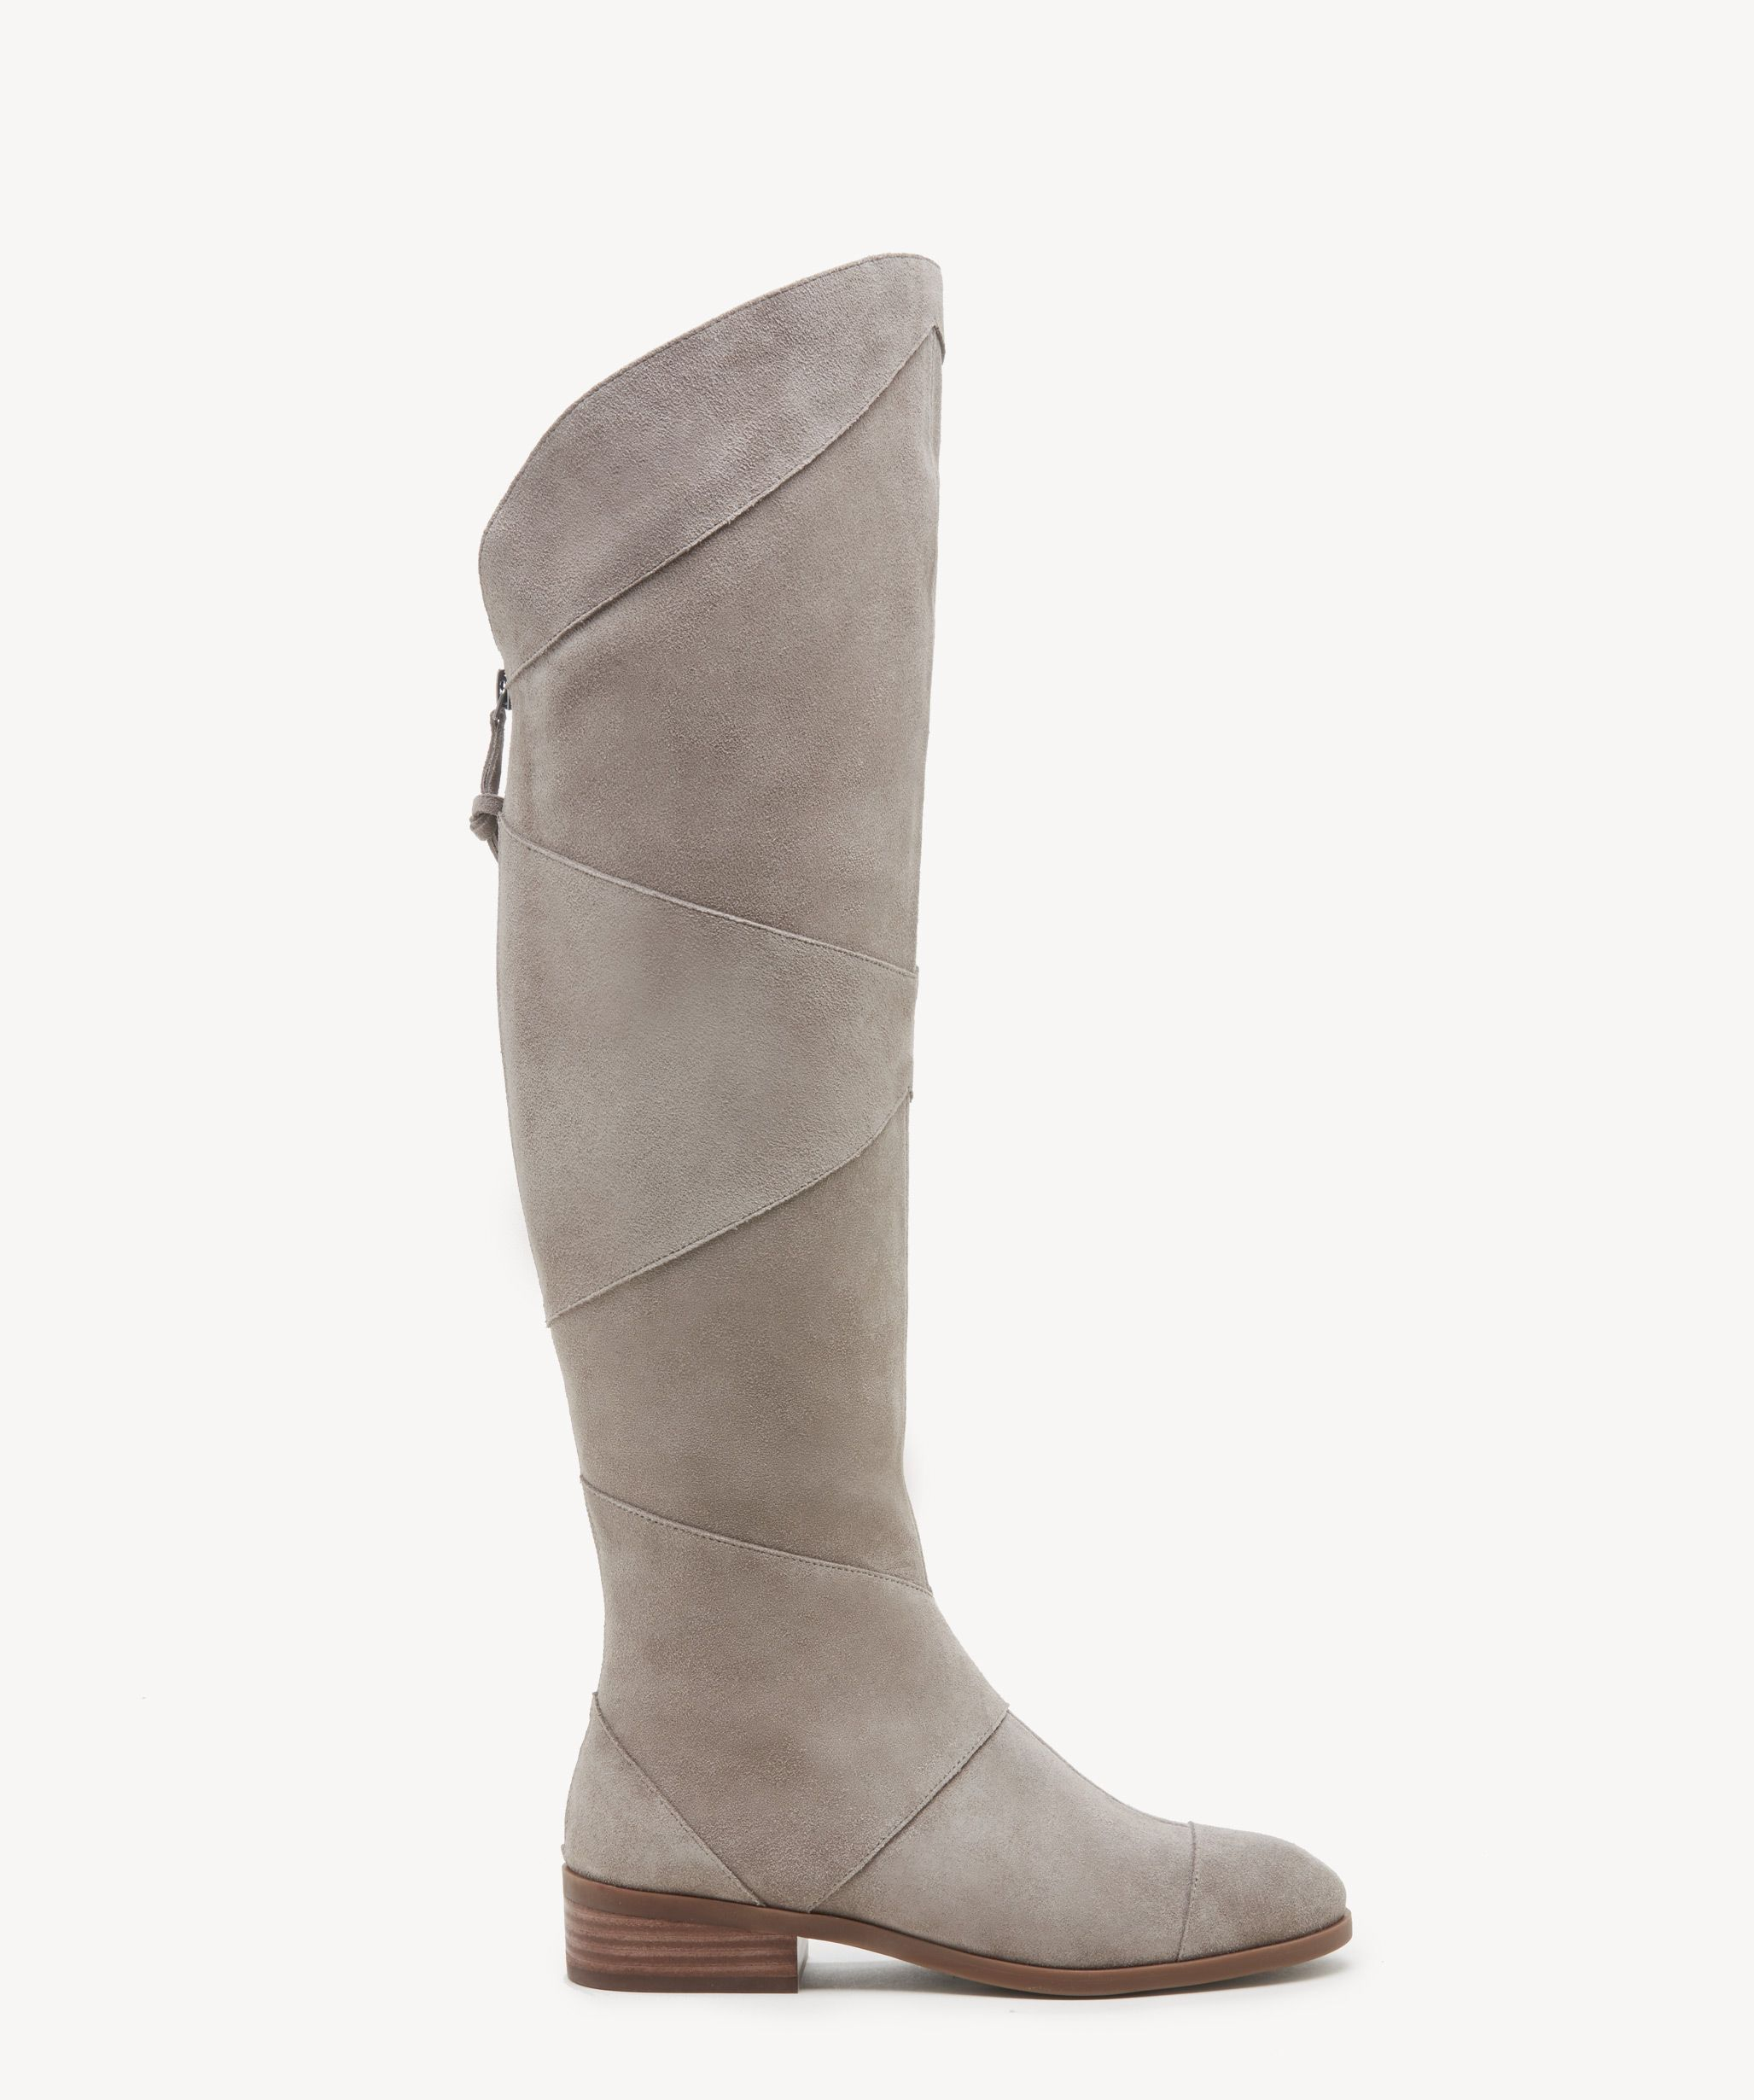 d41e739c433 Tiff in 2019 | Products | Shoes, Boots, Fall shoes